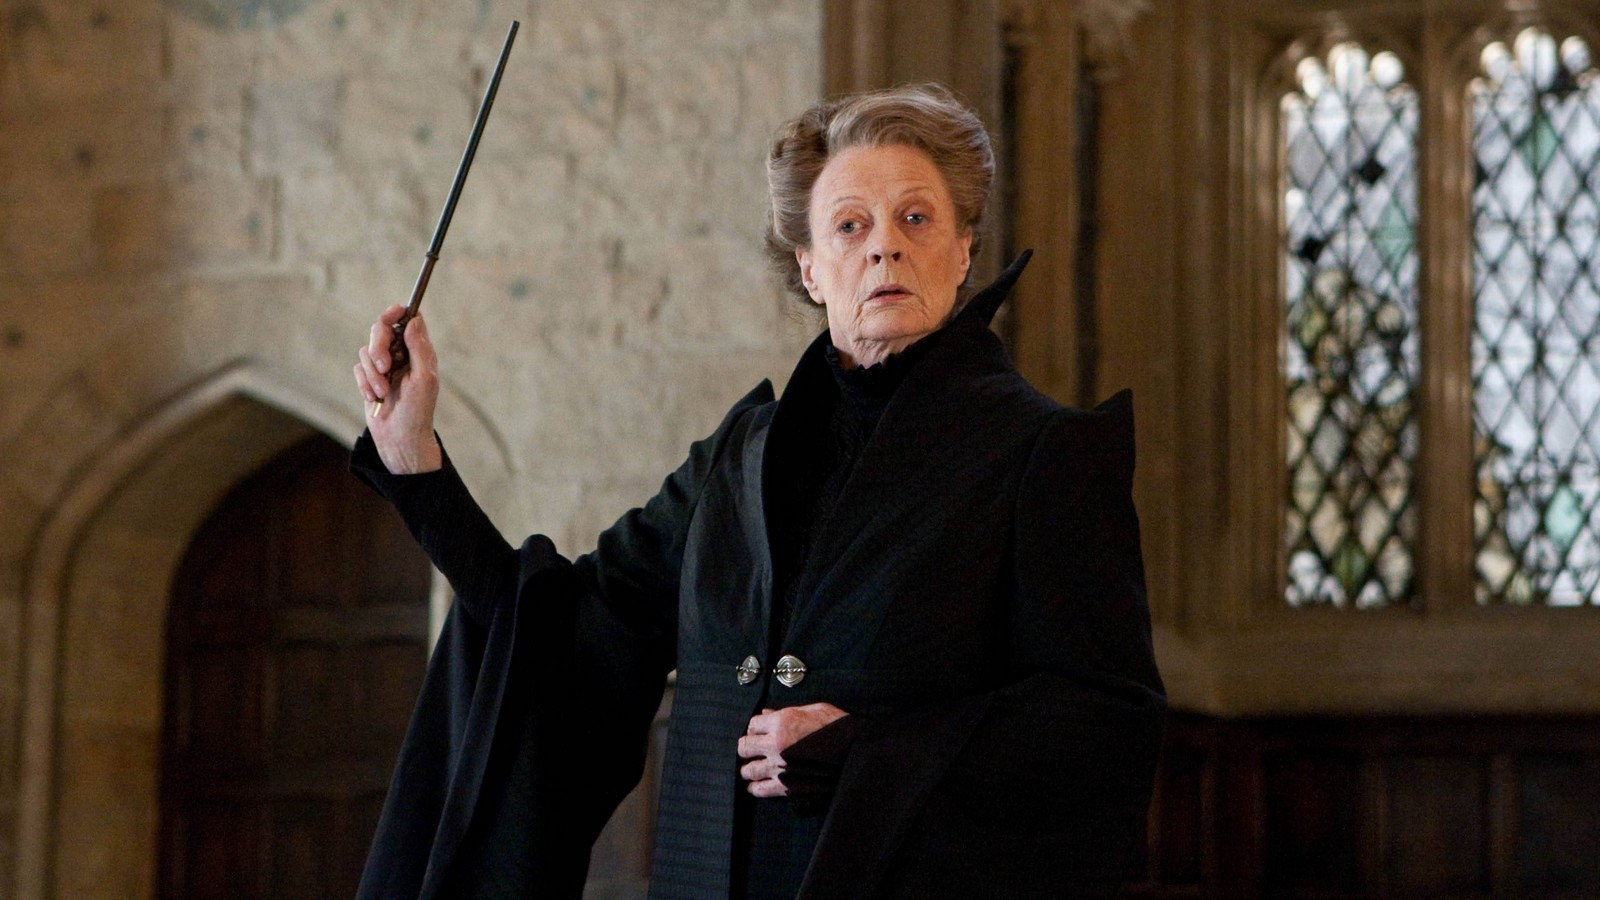 Maggie Smith alias Professor Minerva McGonagall